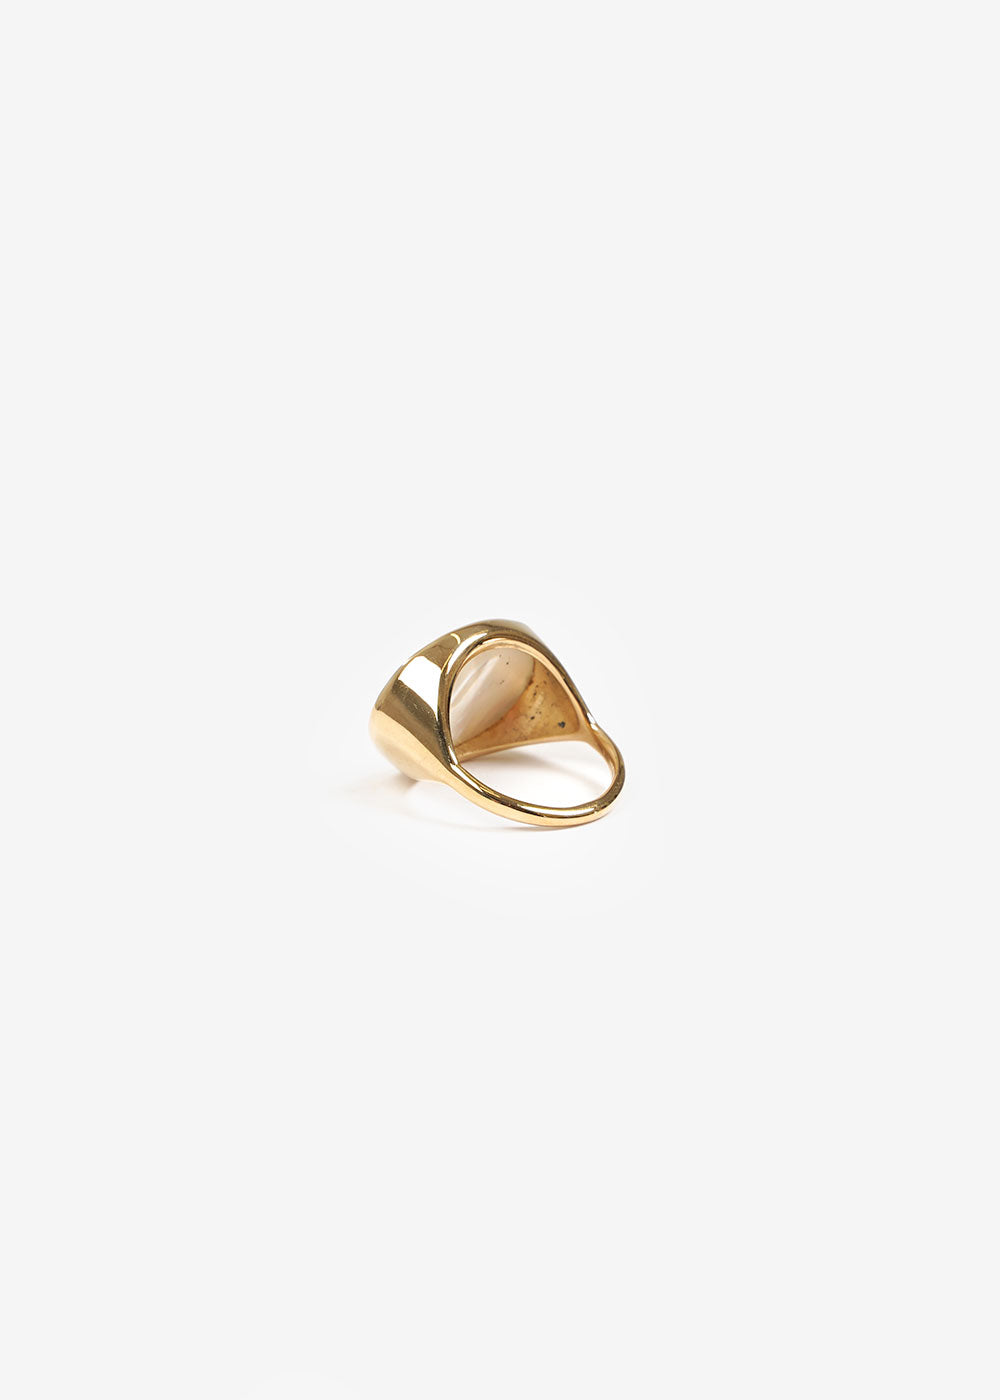 LUINY Madre Perla Ring — Shop sustainable fashion and slow fashion at New Classics Studios